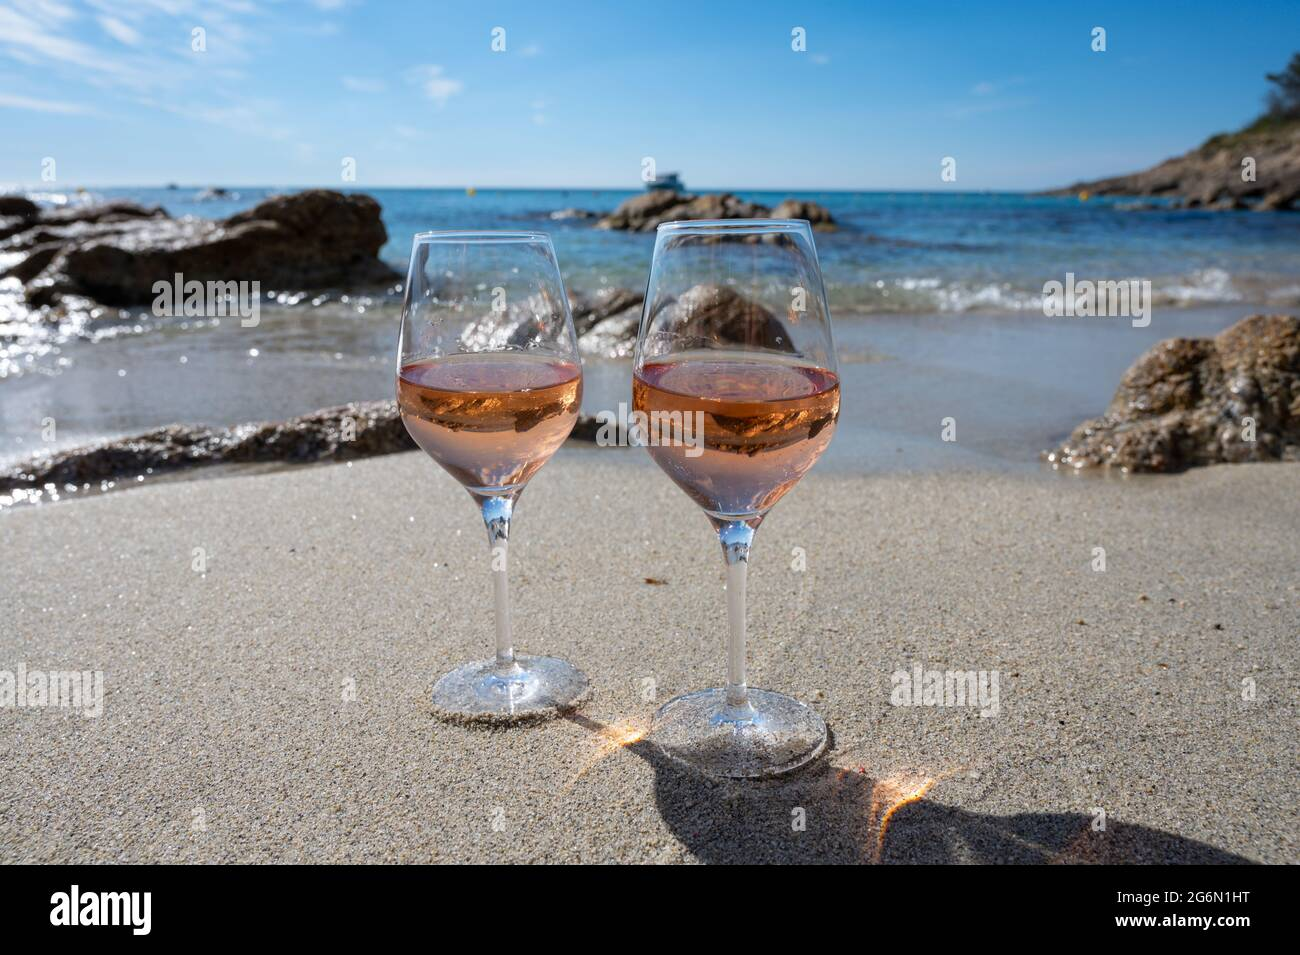 Summer time in Provence, two glasses of cold rose wine on sandy beach near Saint-Tropez in sunny day, Var department, France Stock Photo